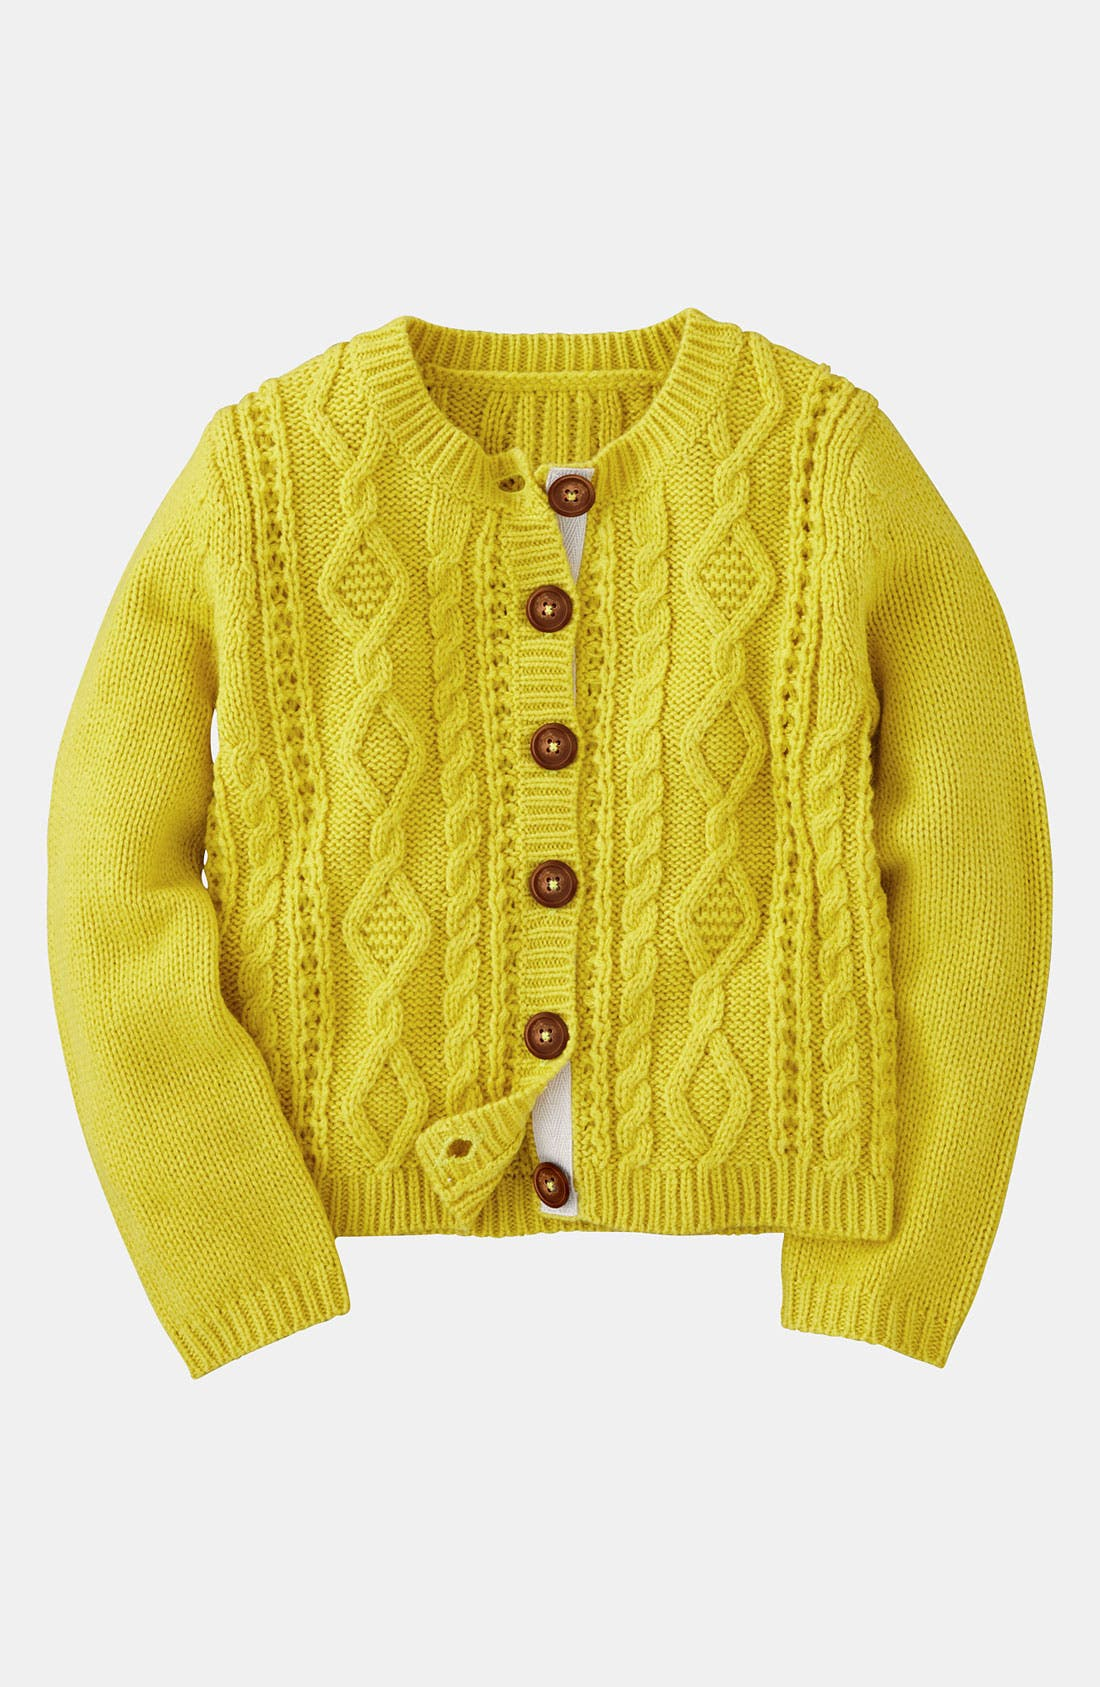 Main Image - Mini Boden 'Cozy' Cable Cardigan (Little Girls & Big Girls)